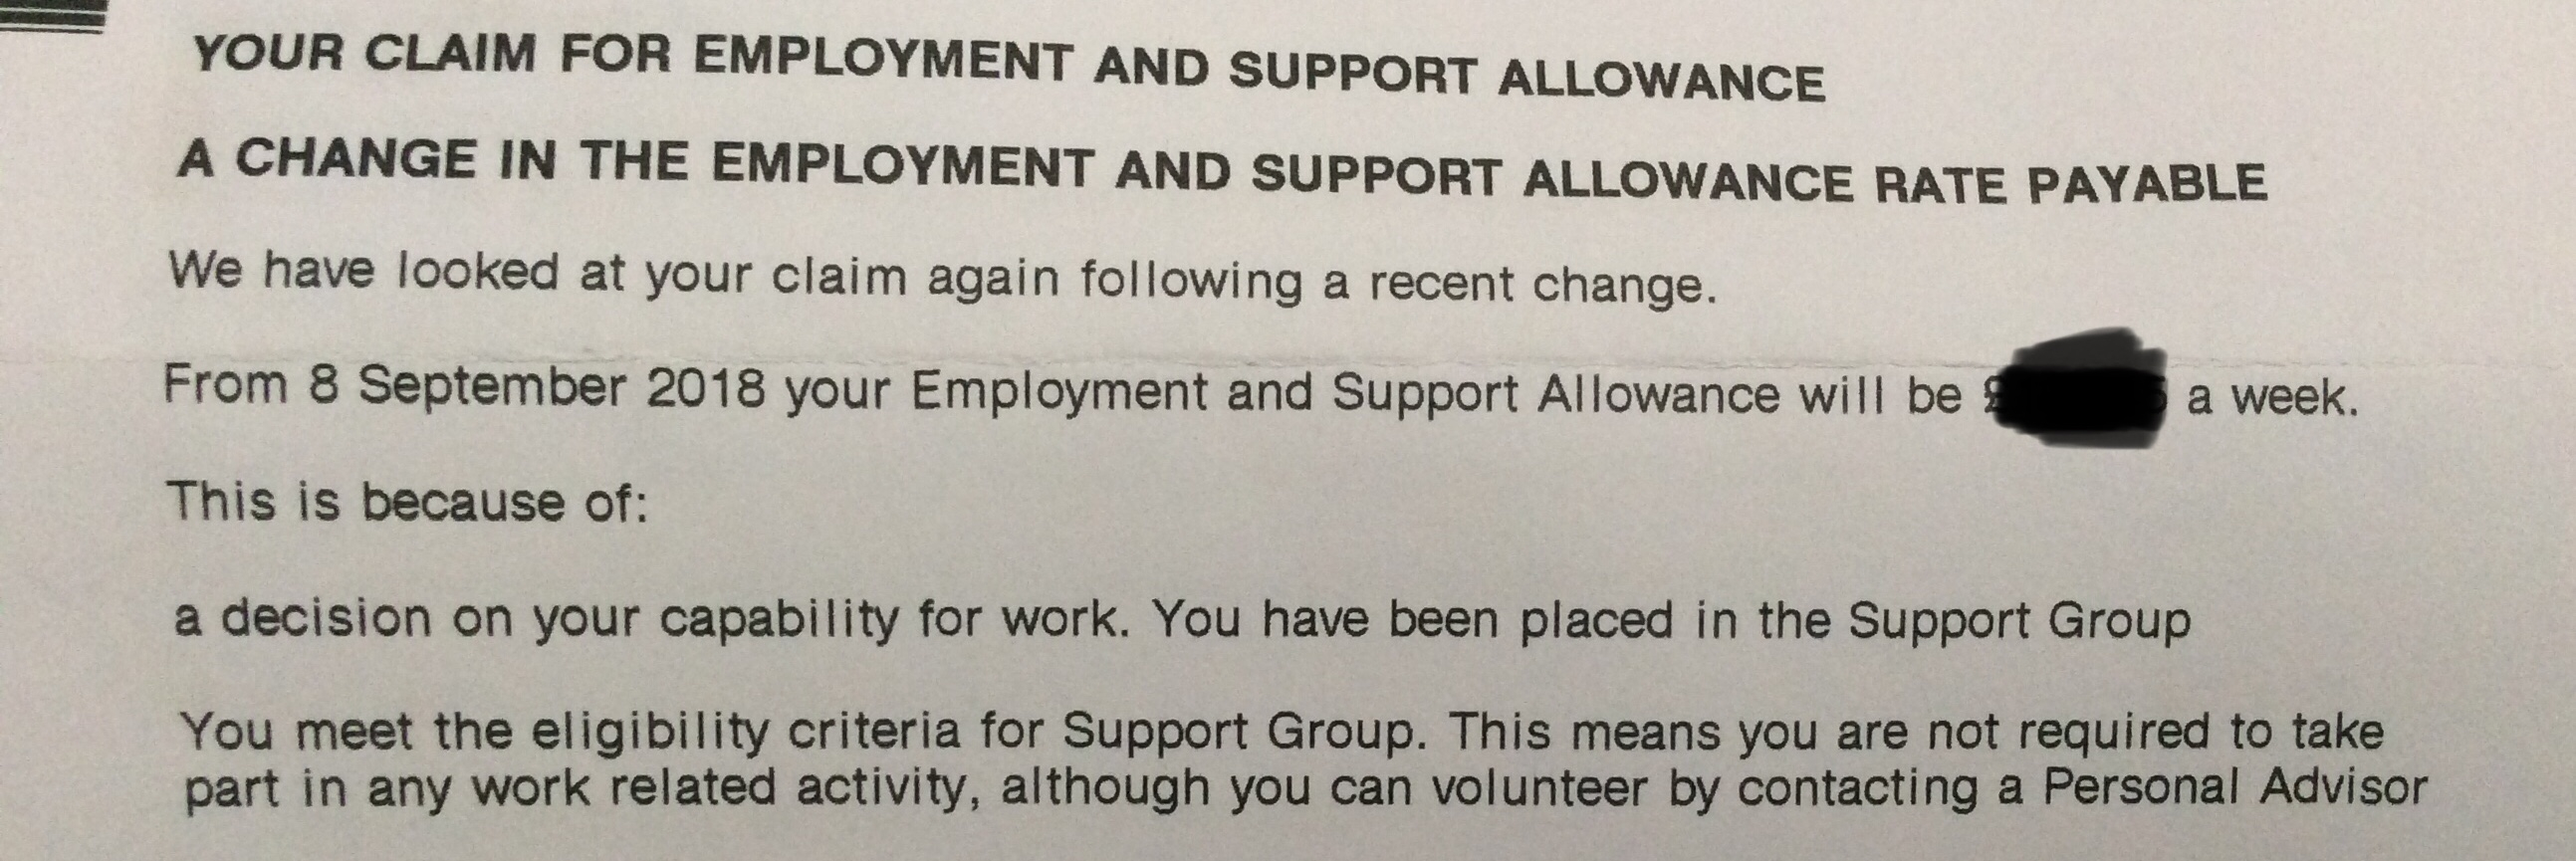 You meet the eligibility criteria for support group